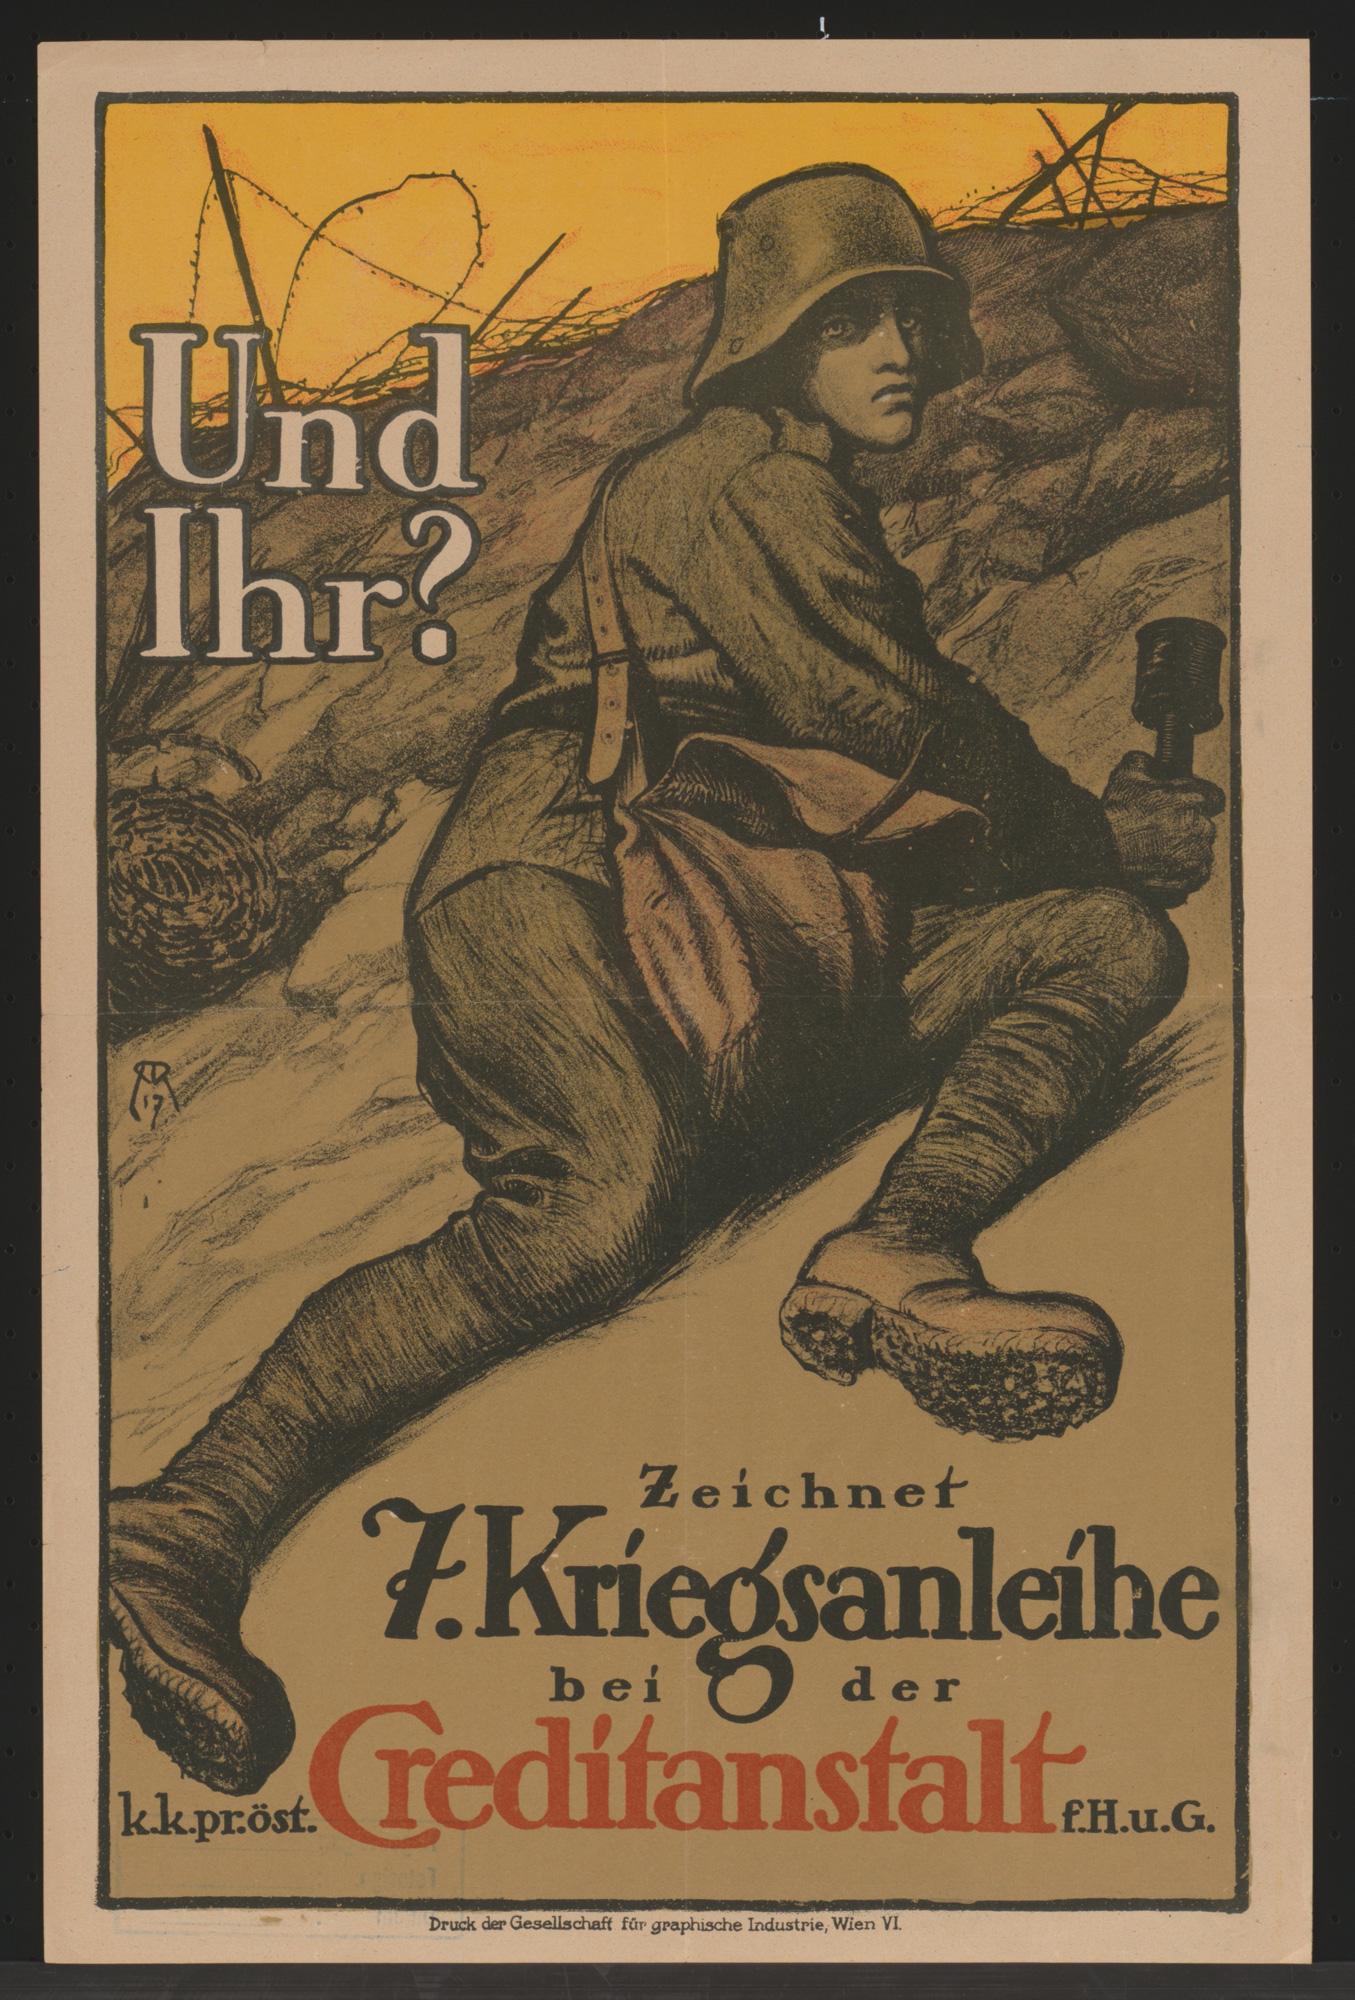 'And you?' This Austrian propaganda poster was designed to encourage citizens to buy war bonds. The poster was commissioned by the Creditanstalt bank in 1917.